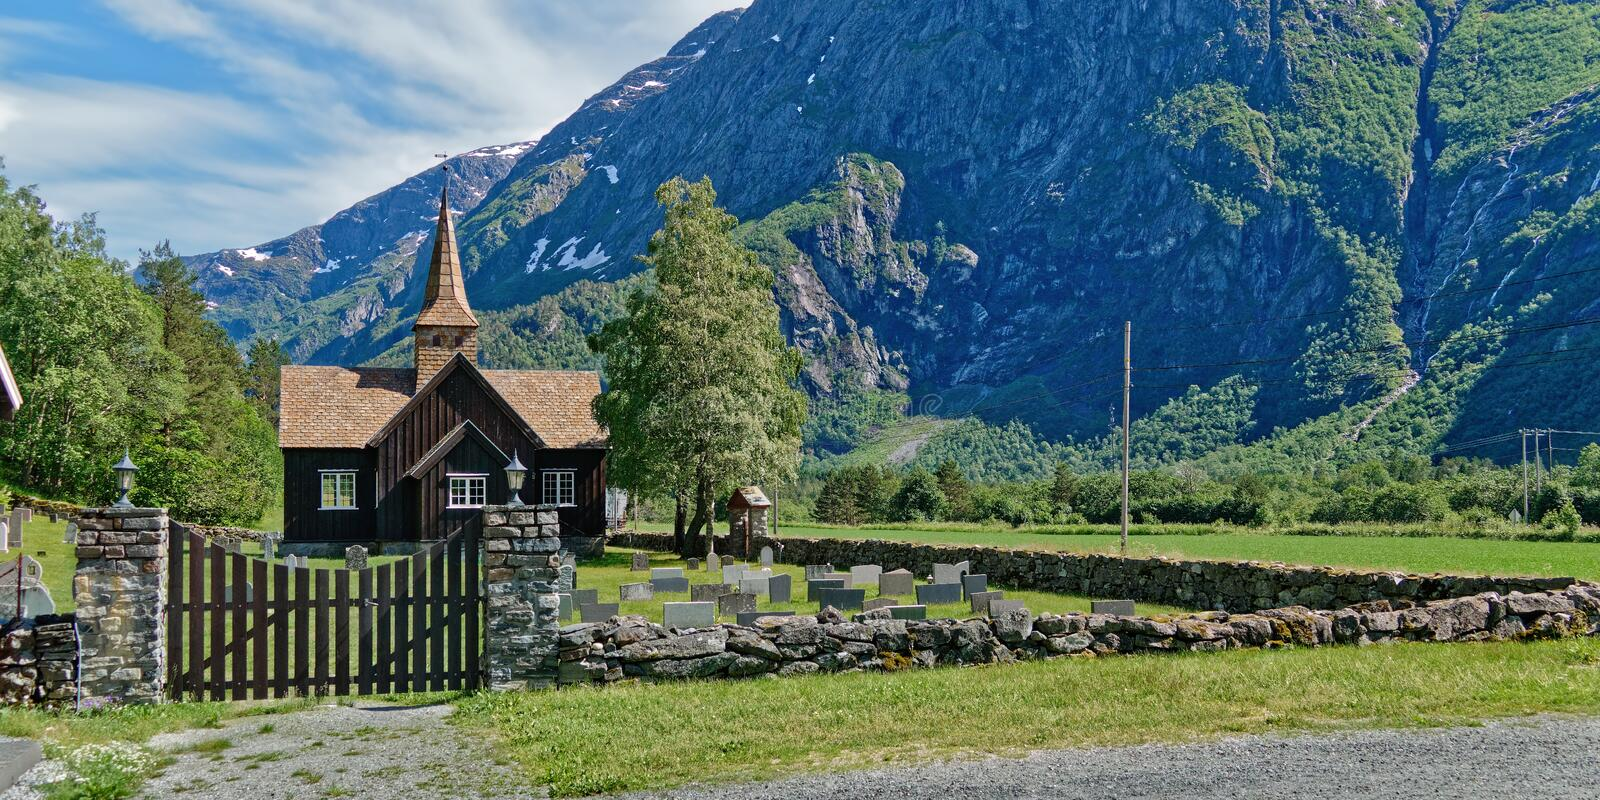 Norway. Hike through the beautiful Rauma royalty free stock photography